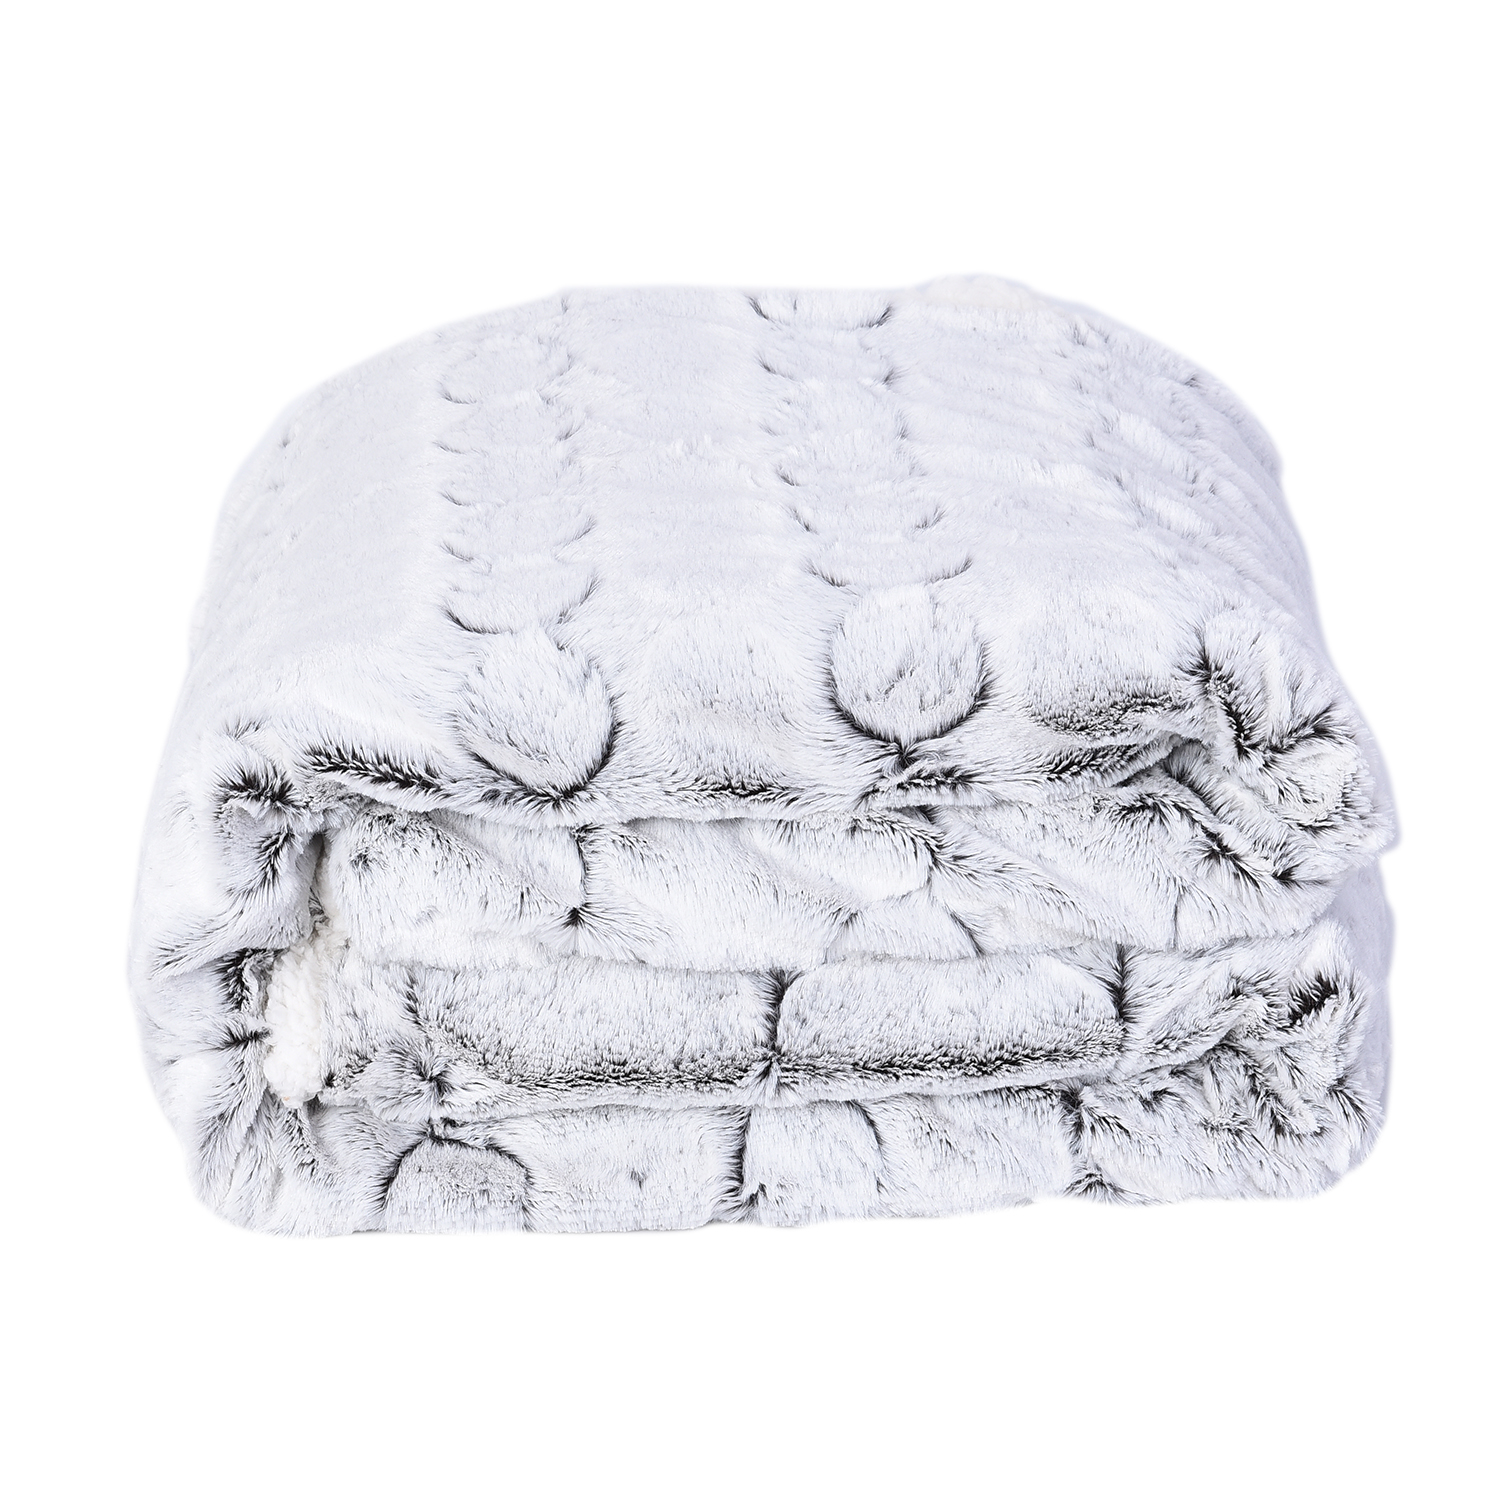 59x79, Acrylic /& Microfiber Details about  /Homesmart Luxury White Wolf Faux Fur Blanket